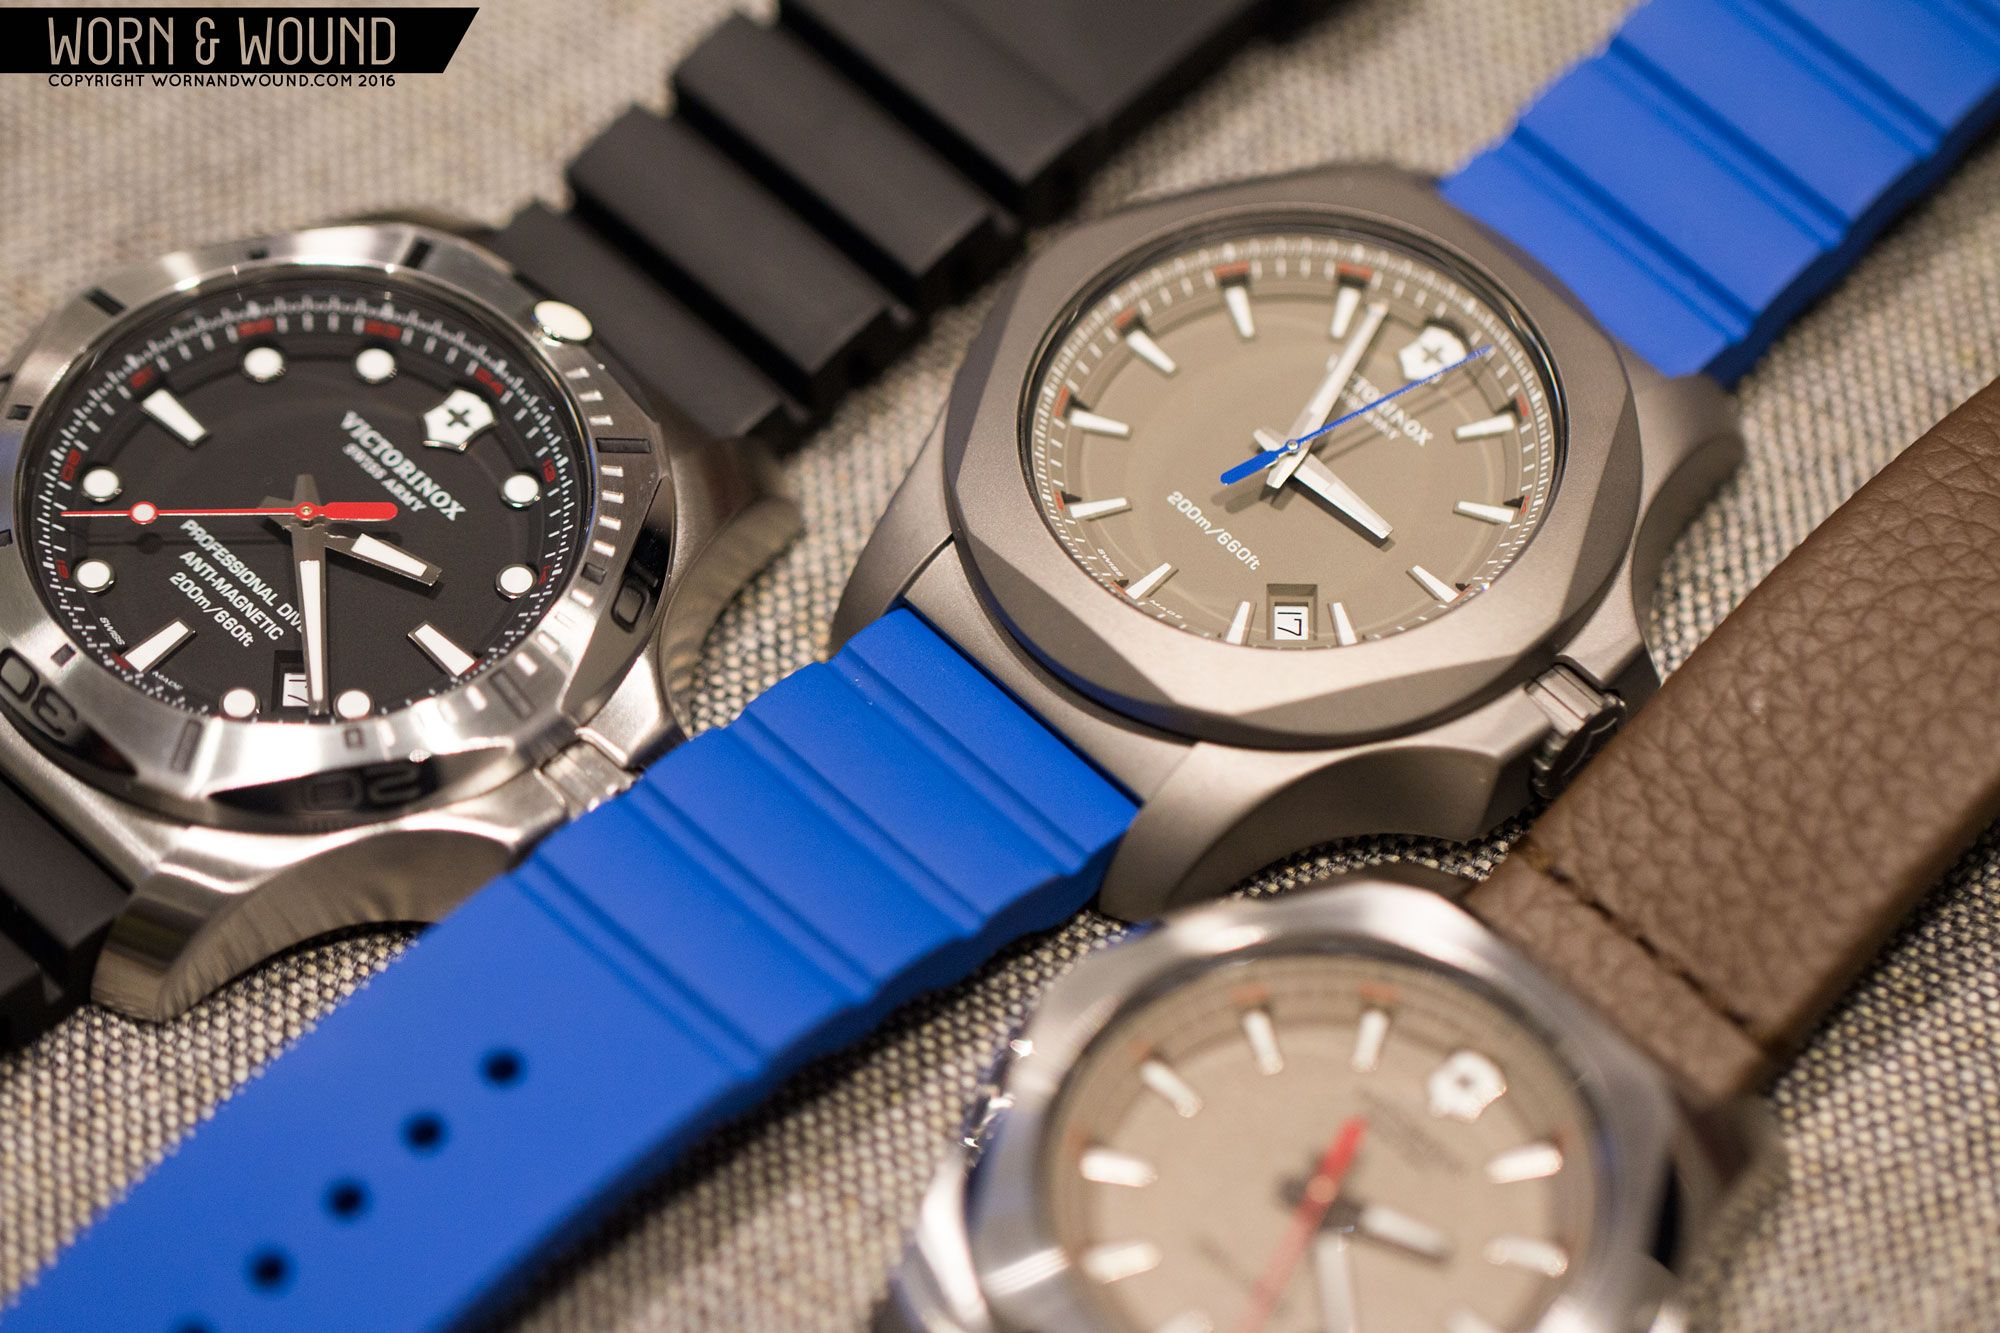 Live from Baselworld - @wornandwound makes a new I.N.O.X. line-up including the new I.N.O.X. Pro Diver, I.N.O.X. Leather and I.N.O.X. Titanium styles. #INOXWatch